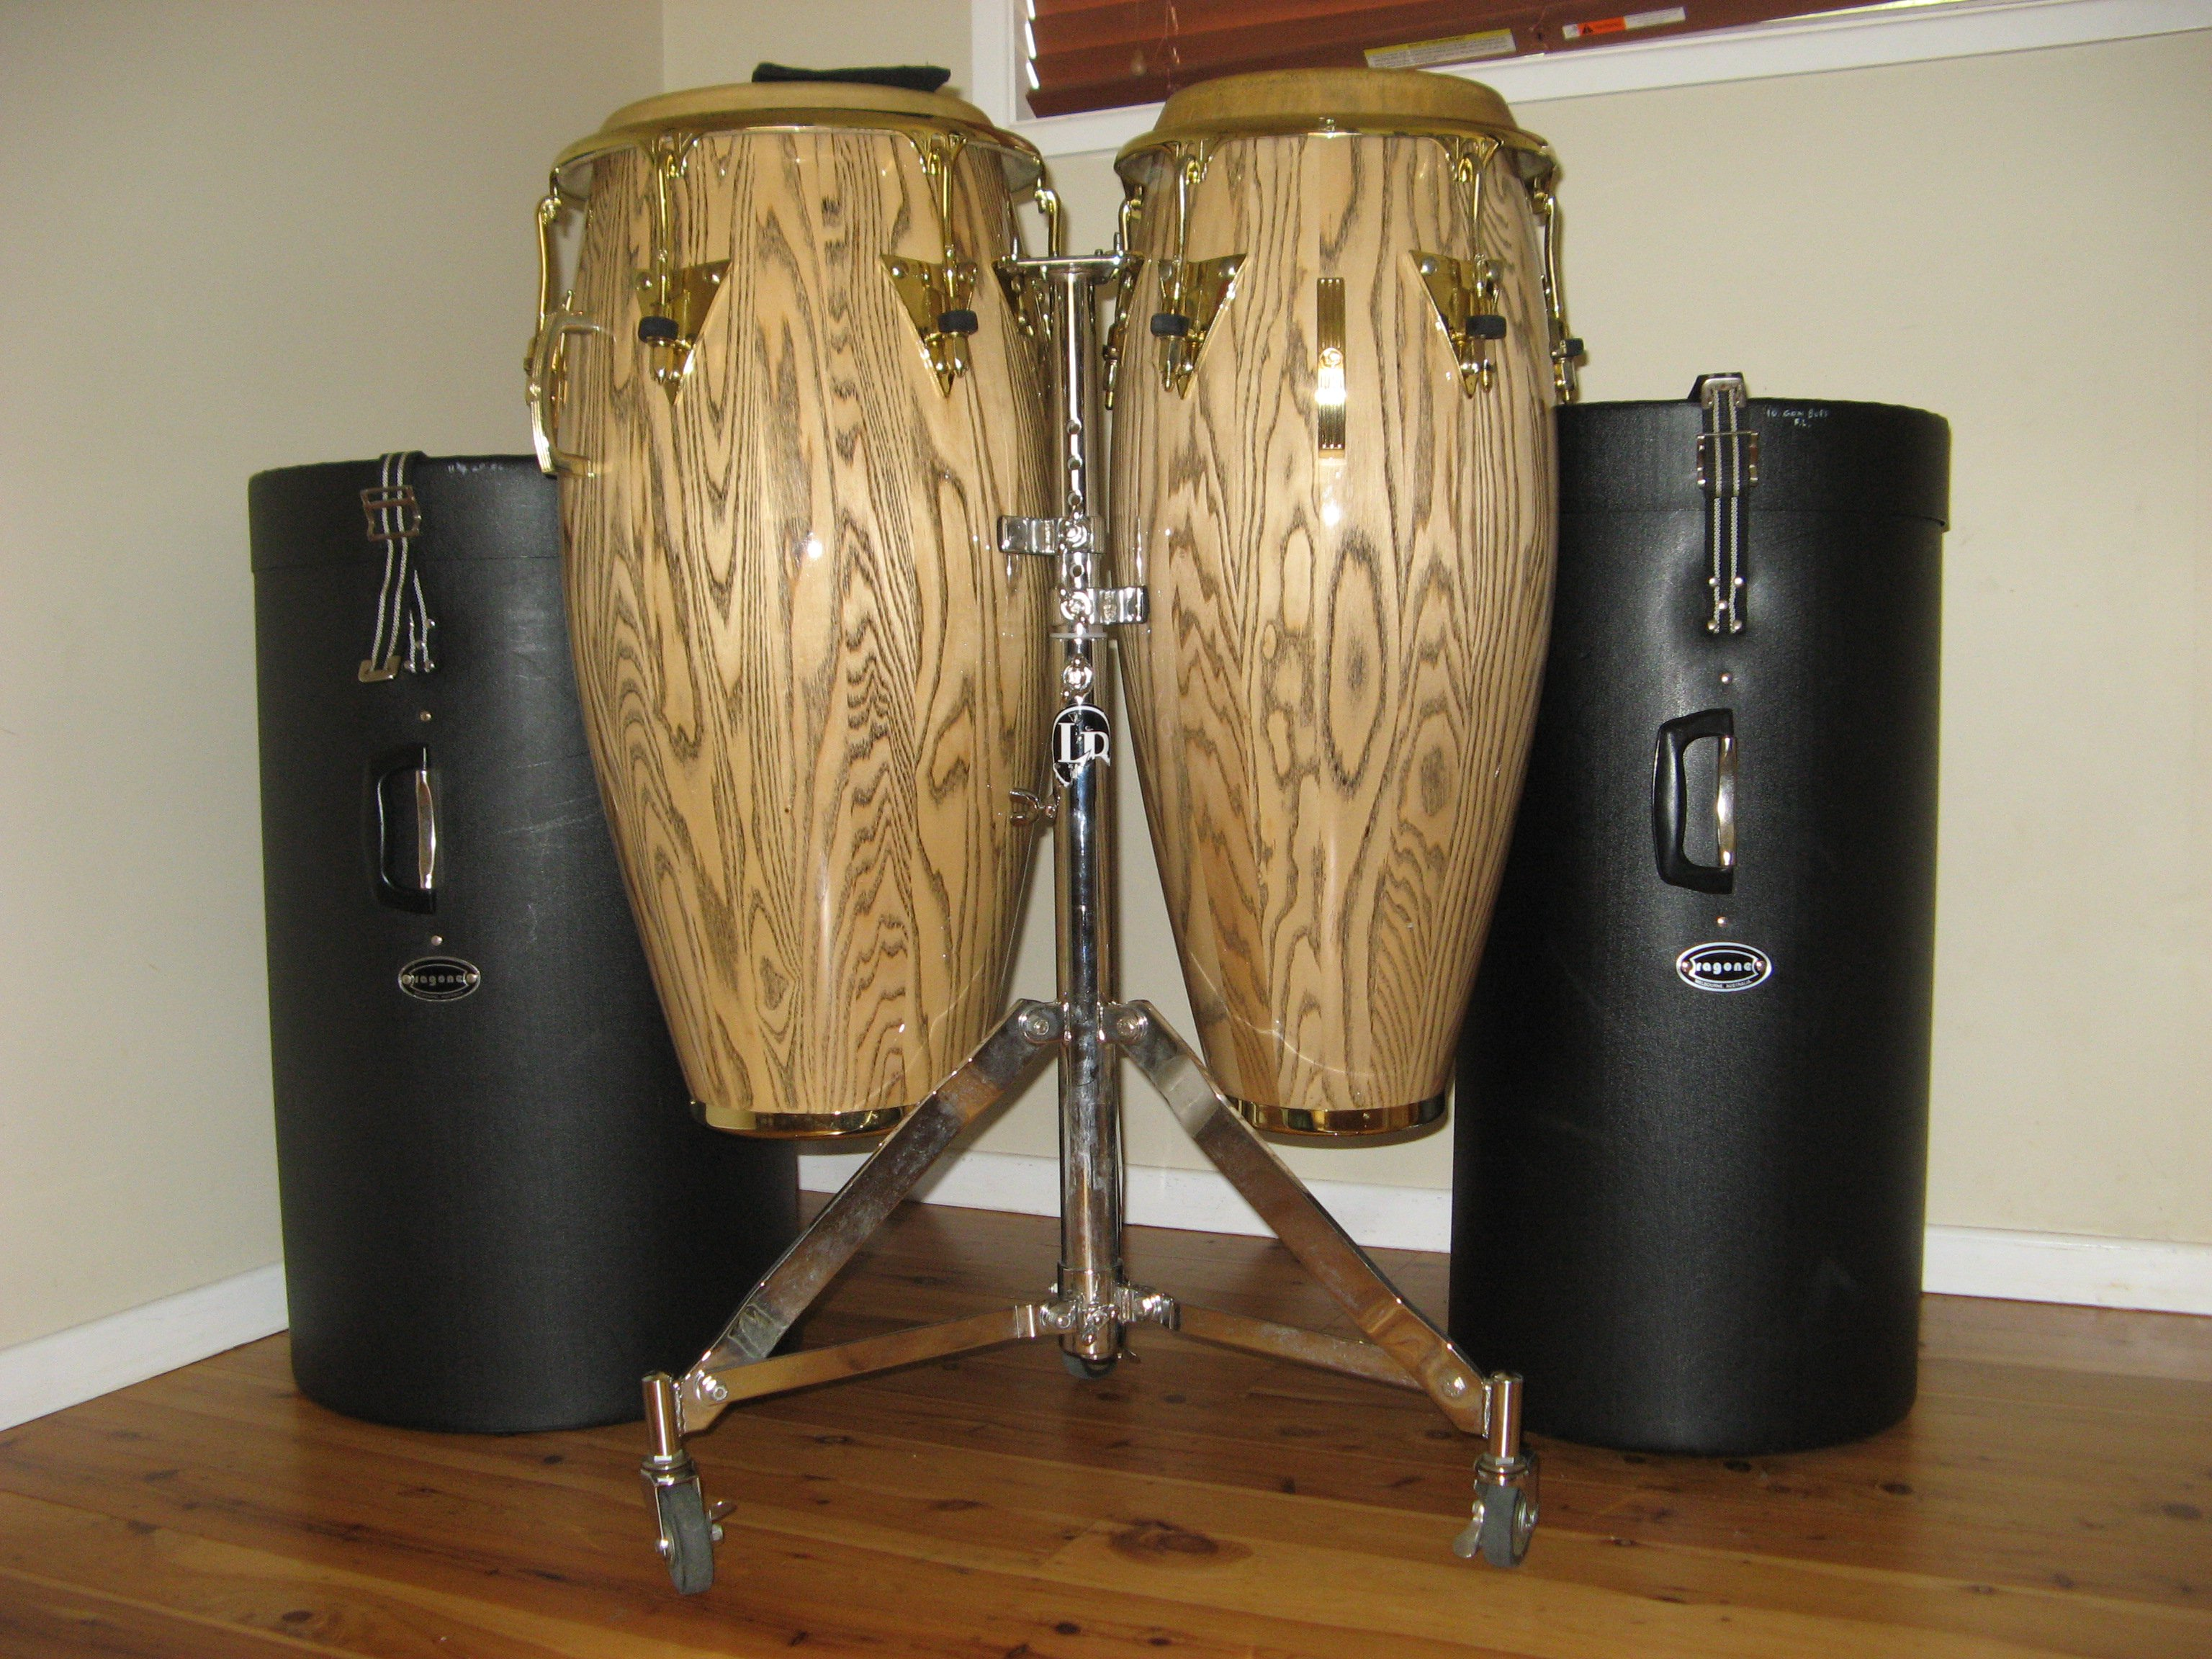 FOR SALE: LP Galaxy Giovanni Congas w/ Stand and Hard Cases